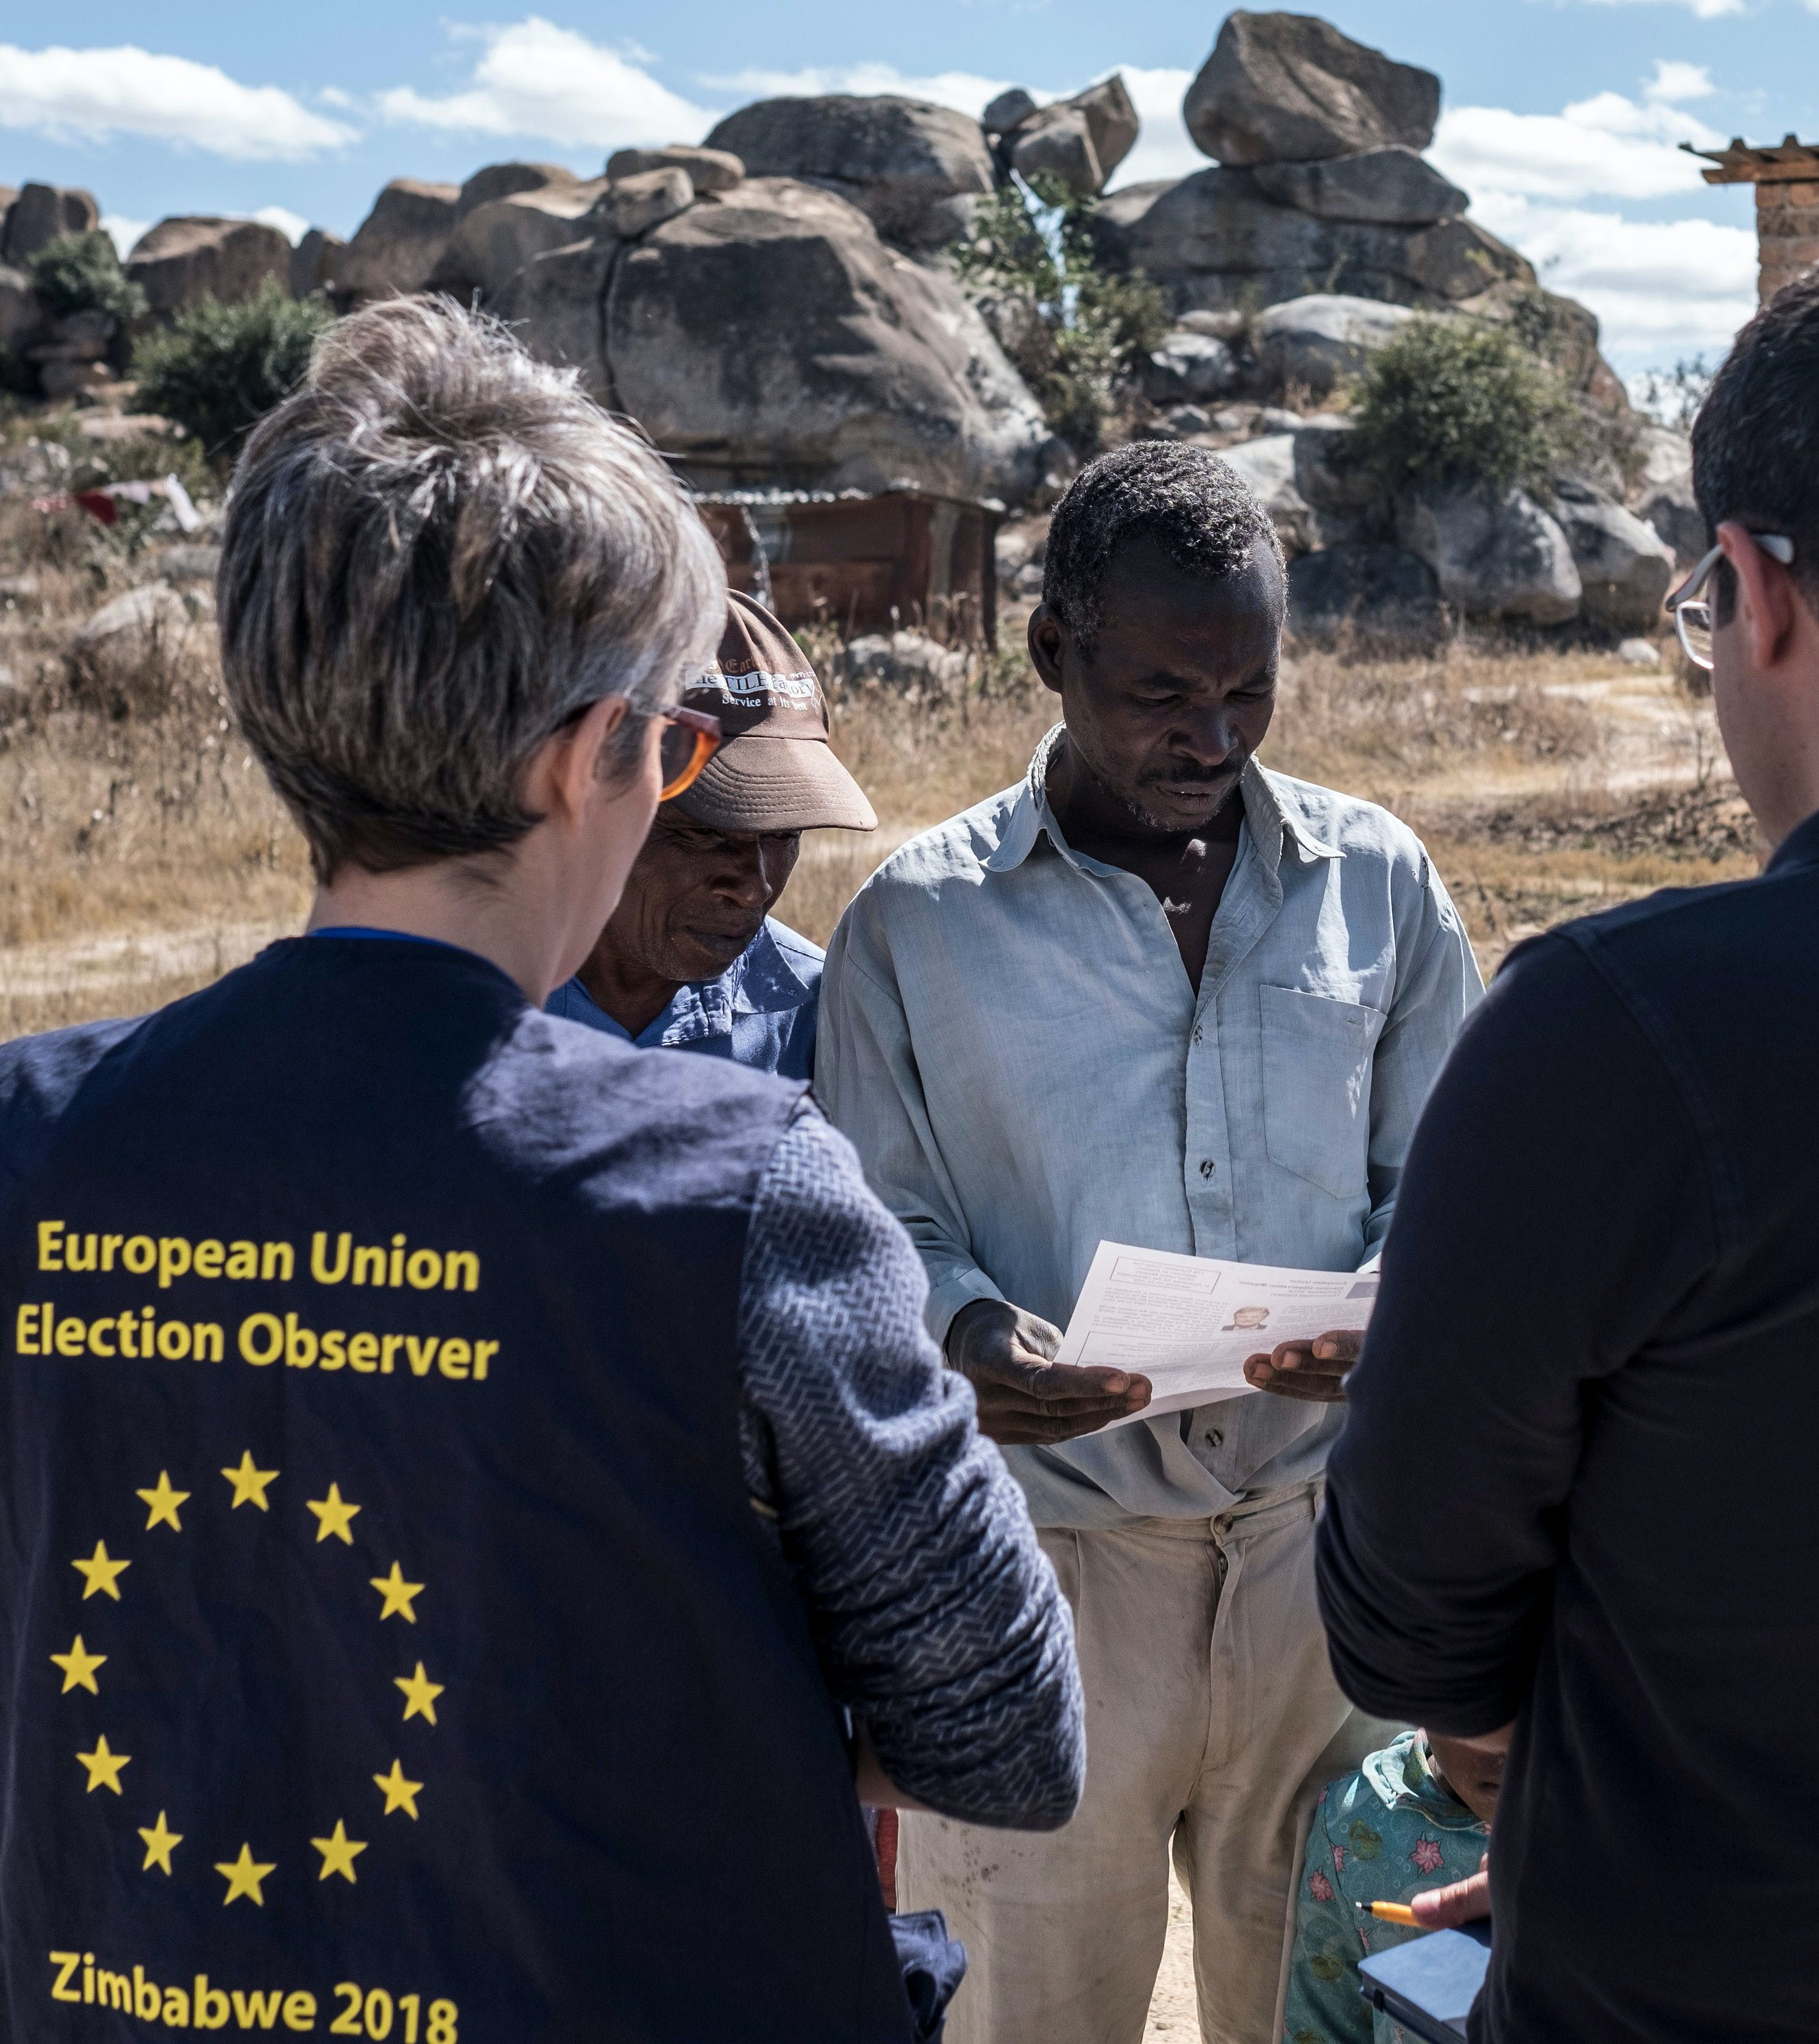 Members of a European Union election observation team speak to voters in Nyatsime, on July 24, 2018. - EU observers have been invited back into the country by the Zimbabwean Government for the first time after a key observer was expelled during the disputed 2002 presidential election. Zimbabwe will hold general elections on July 30, 2018. (Photo by MARCO LONGARI / AFP)        (Photo credit should read MARCO LONGARI/AFP/Getty Images)